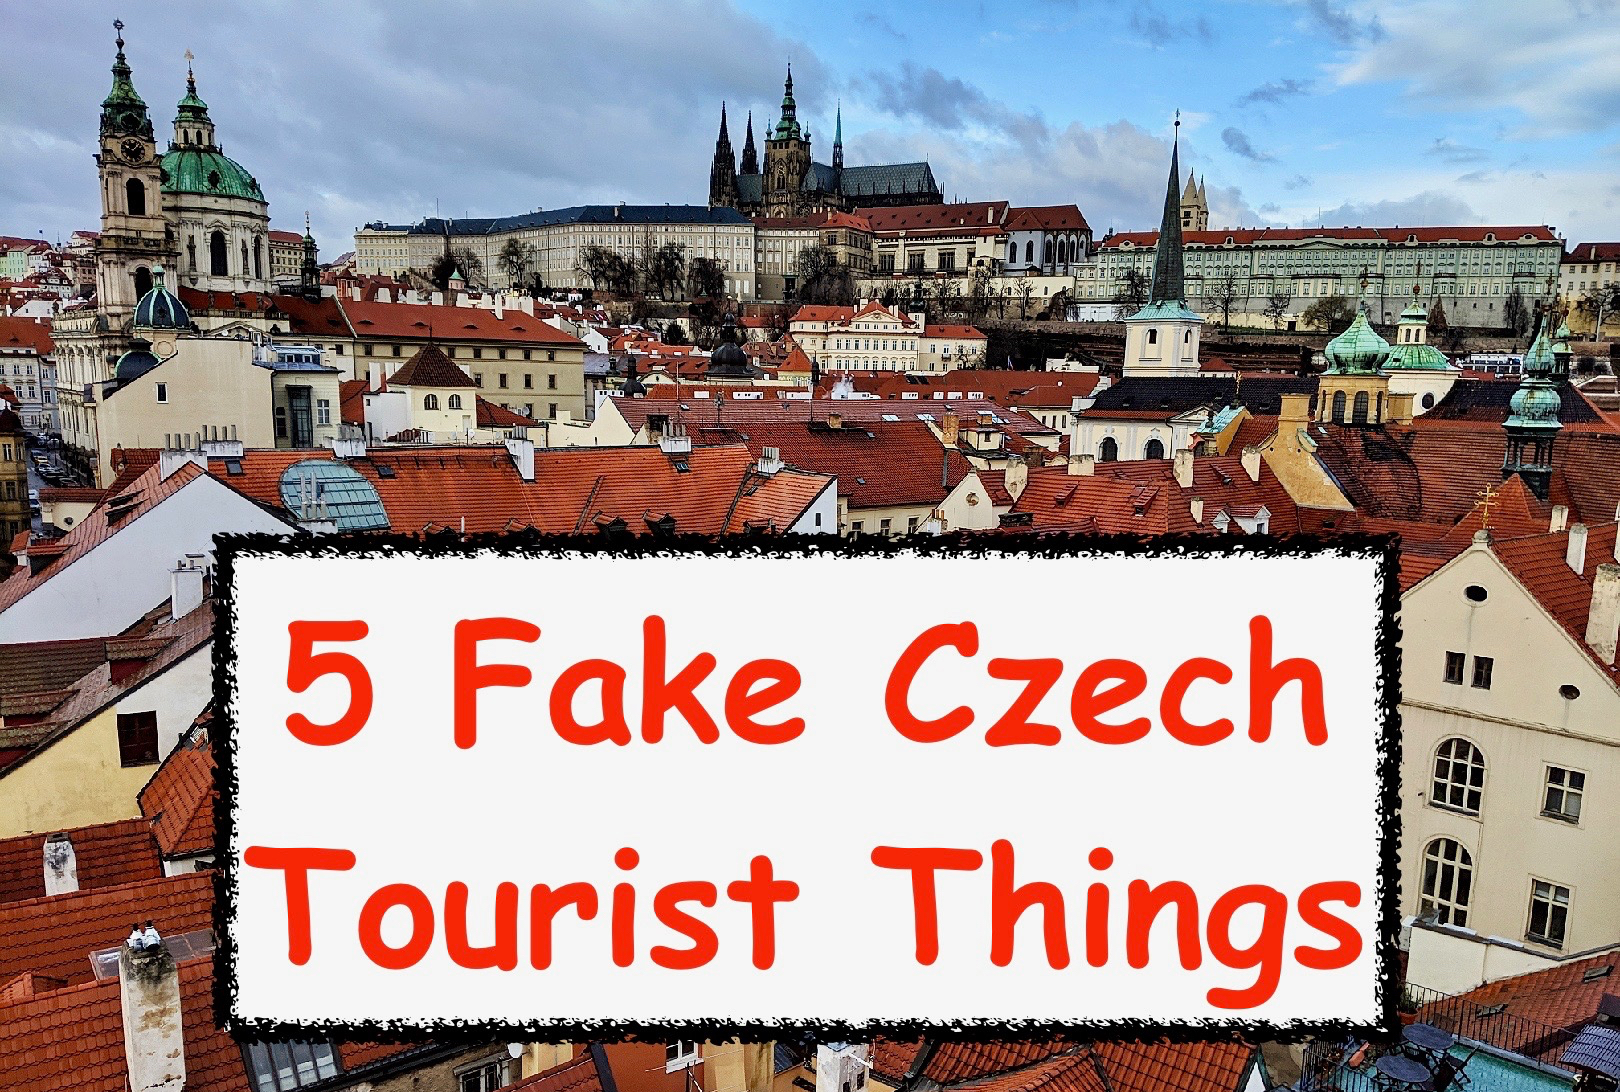 fake Czech, 5 Fake Czech Tourist Things to Avoid, or Not, The Travel Bug Bite